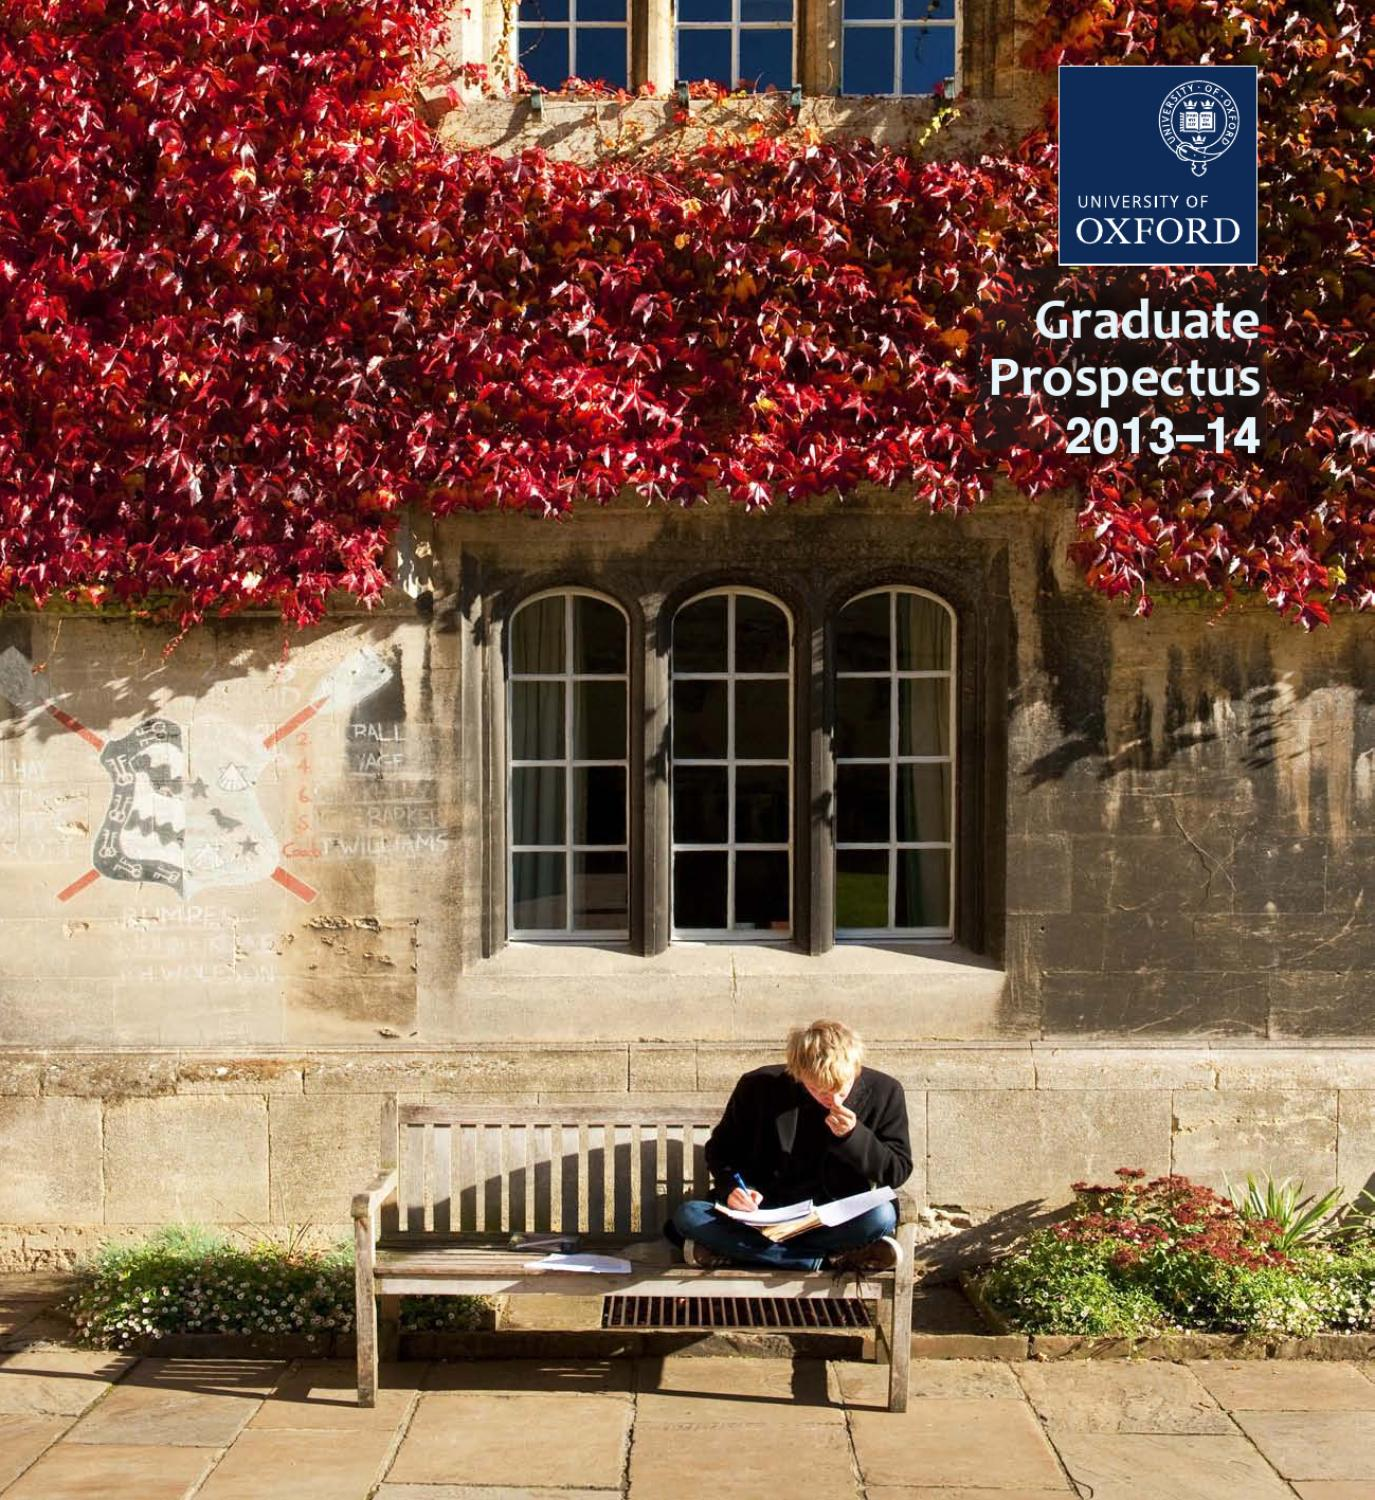 oxford creative writing course Oxford-based summer school offering a range creative writing earth oxford summer courses was established by a network of oxford alumni determined to.